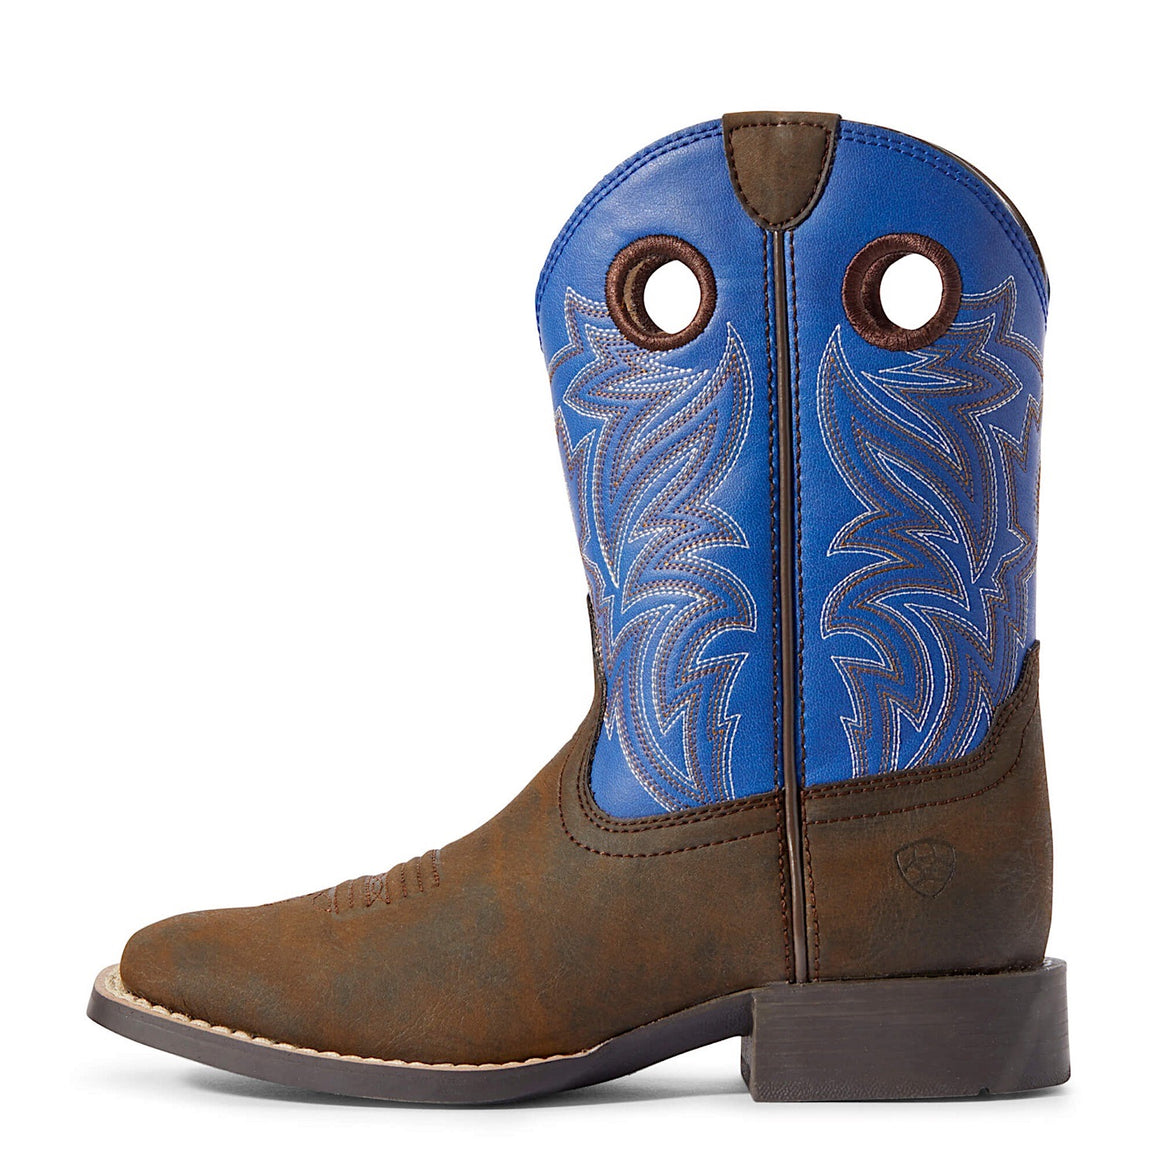 Ariat Kids Catch Em Western Boot Dark Chocolate/Cloud Blue